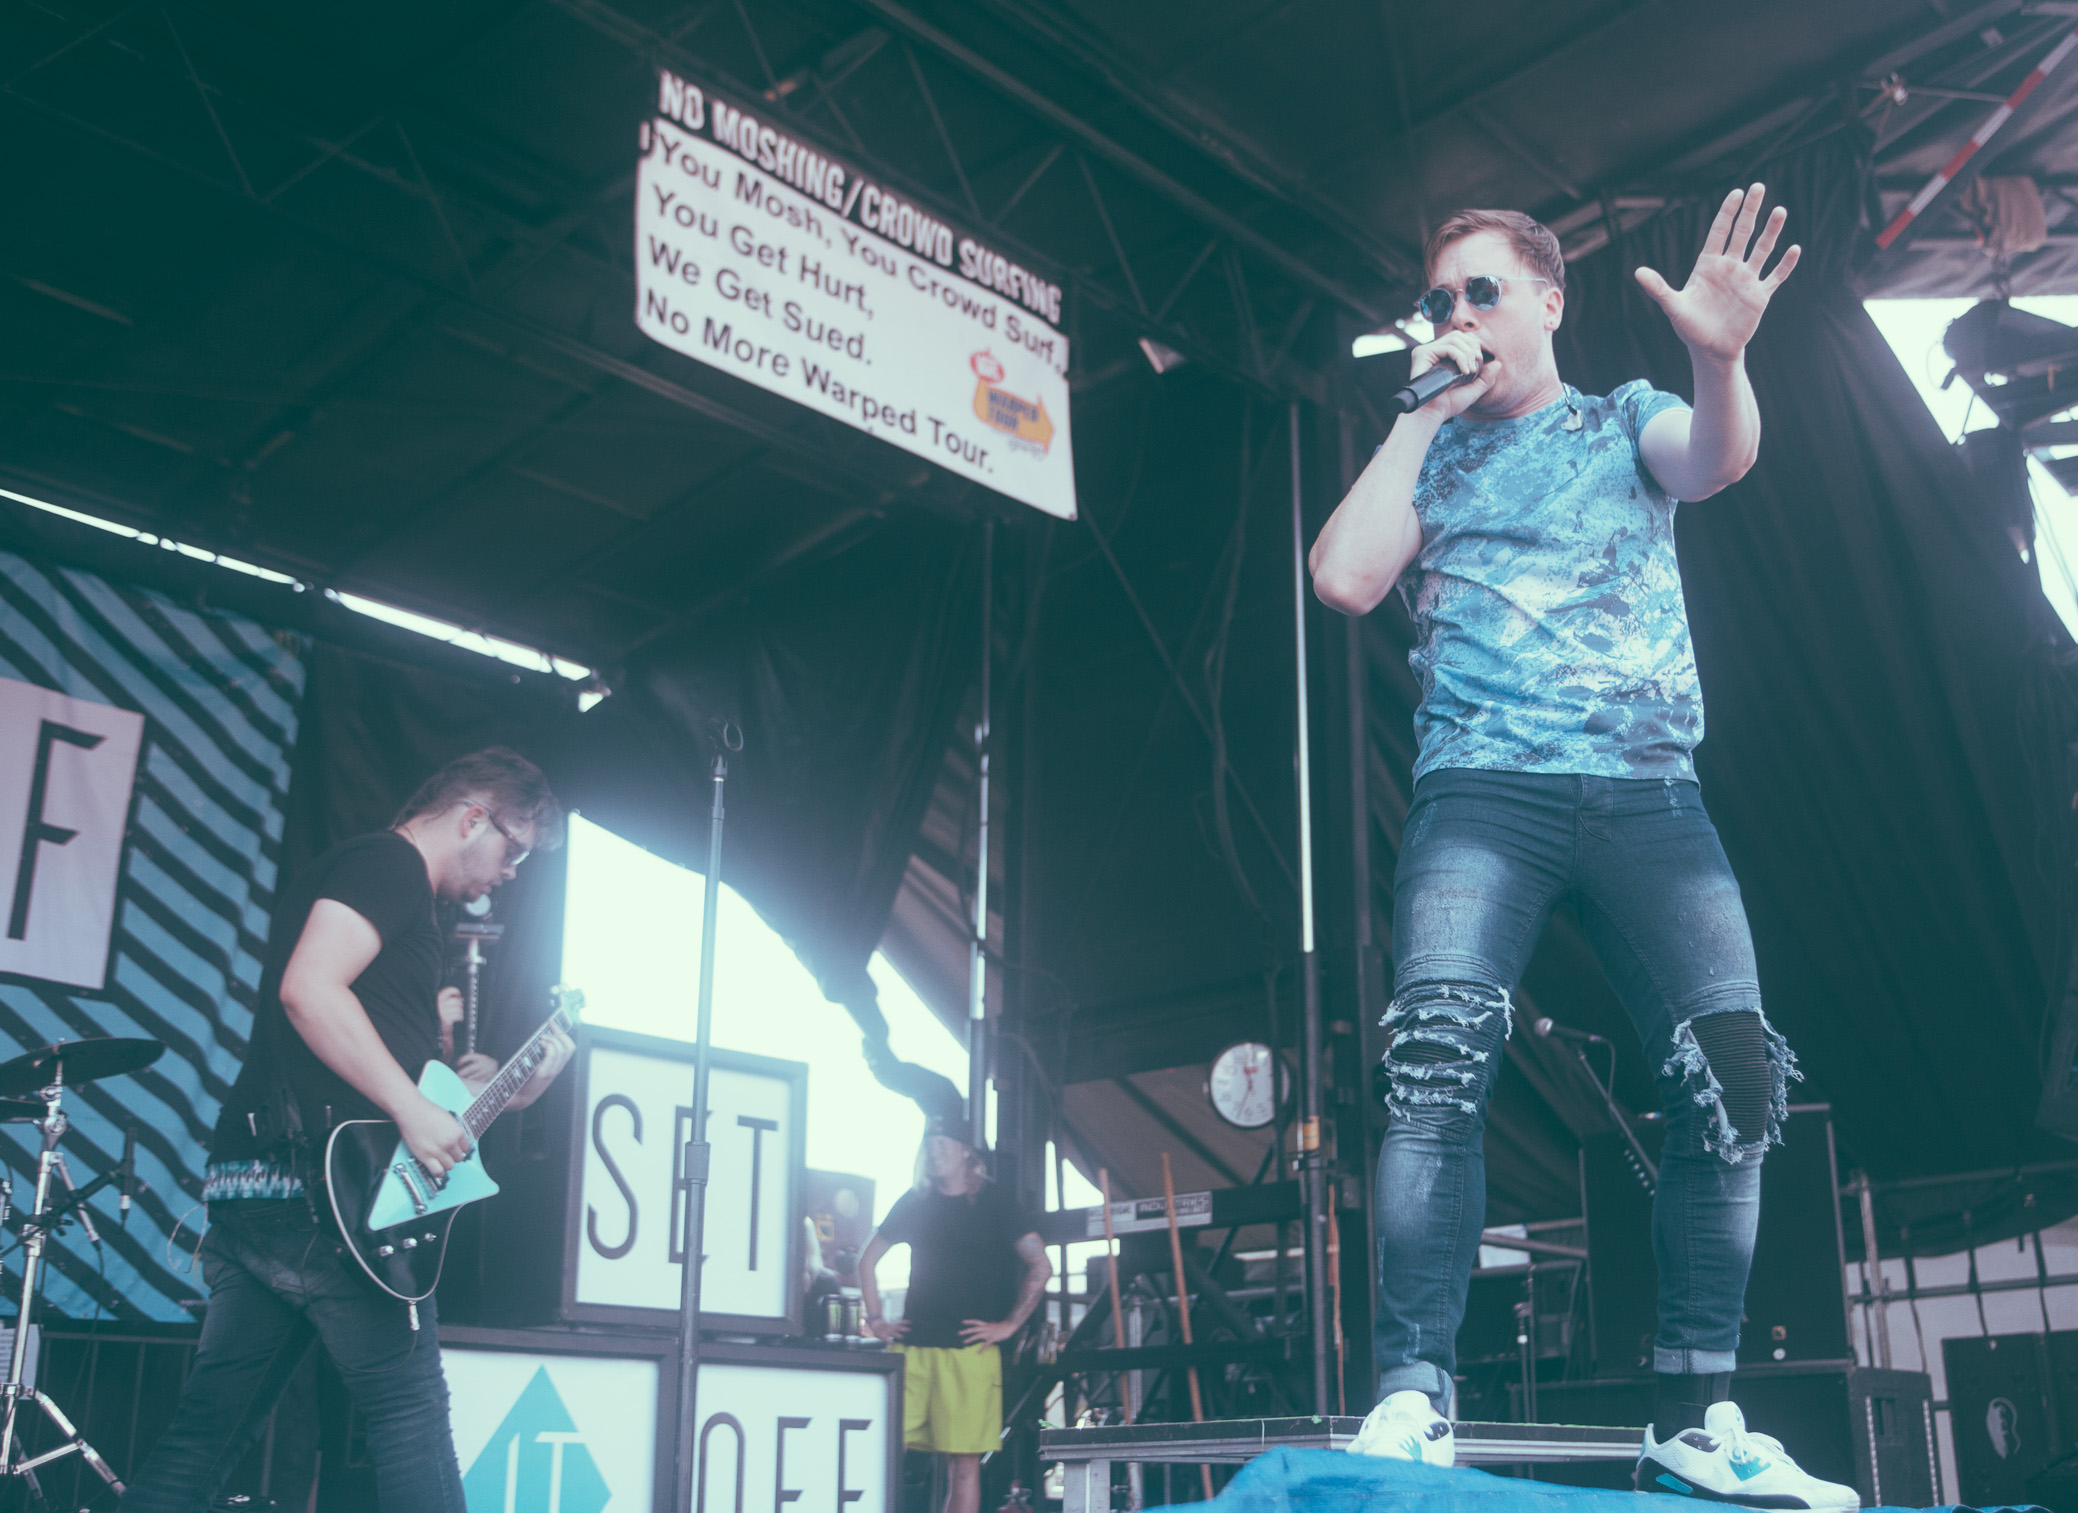 Set It Off performs at the Vans Warped Tour in Atlanta, Georgia on June 30th, 2016.   (Photo by David A. Smith/DSmithScenes)